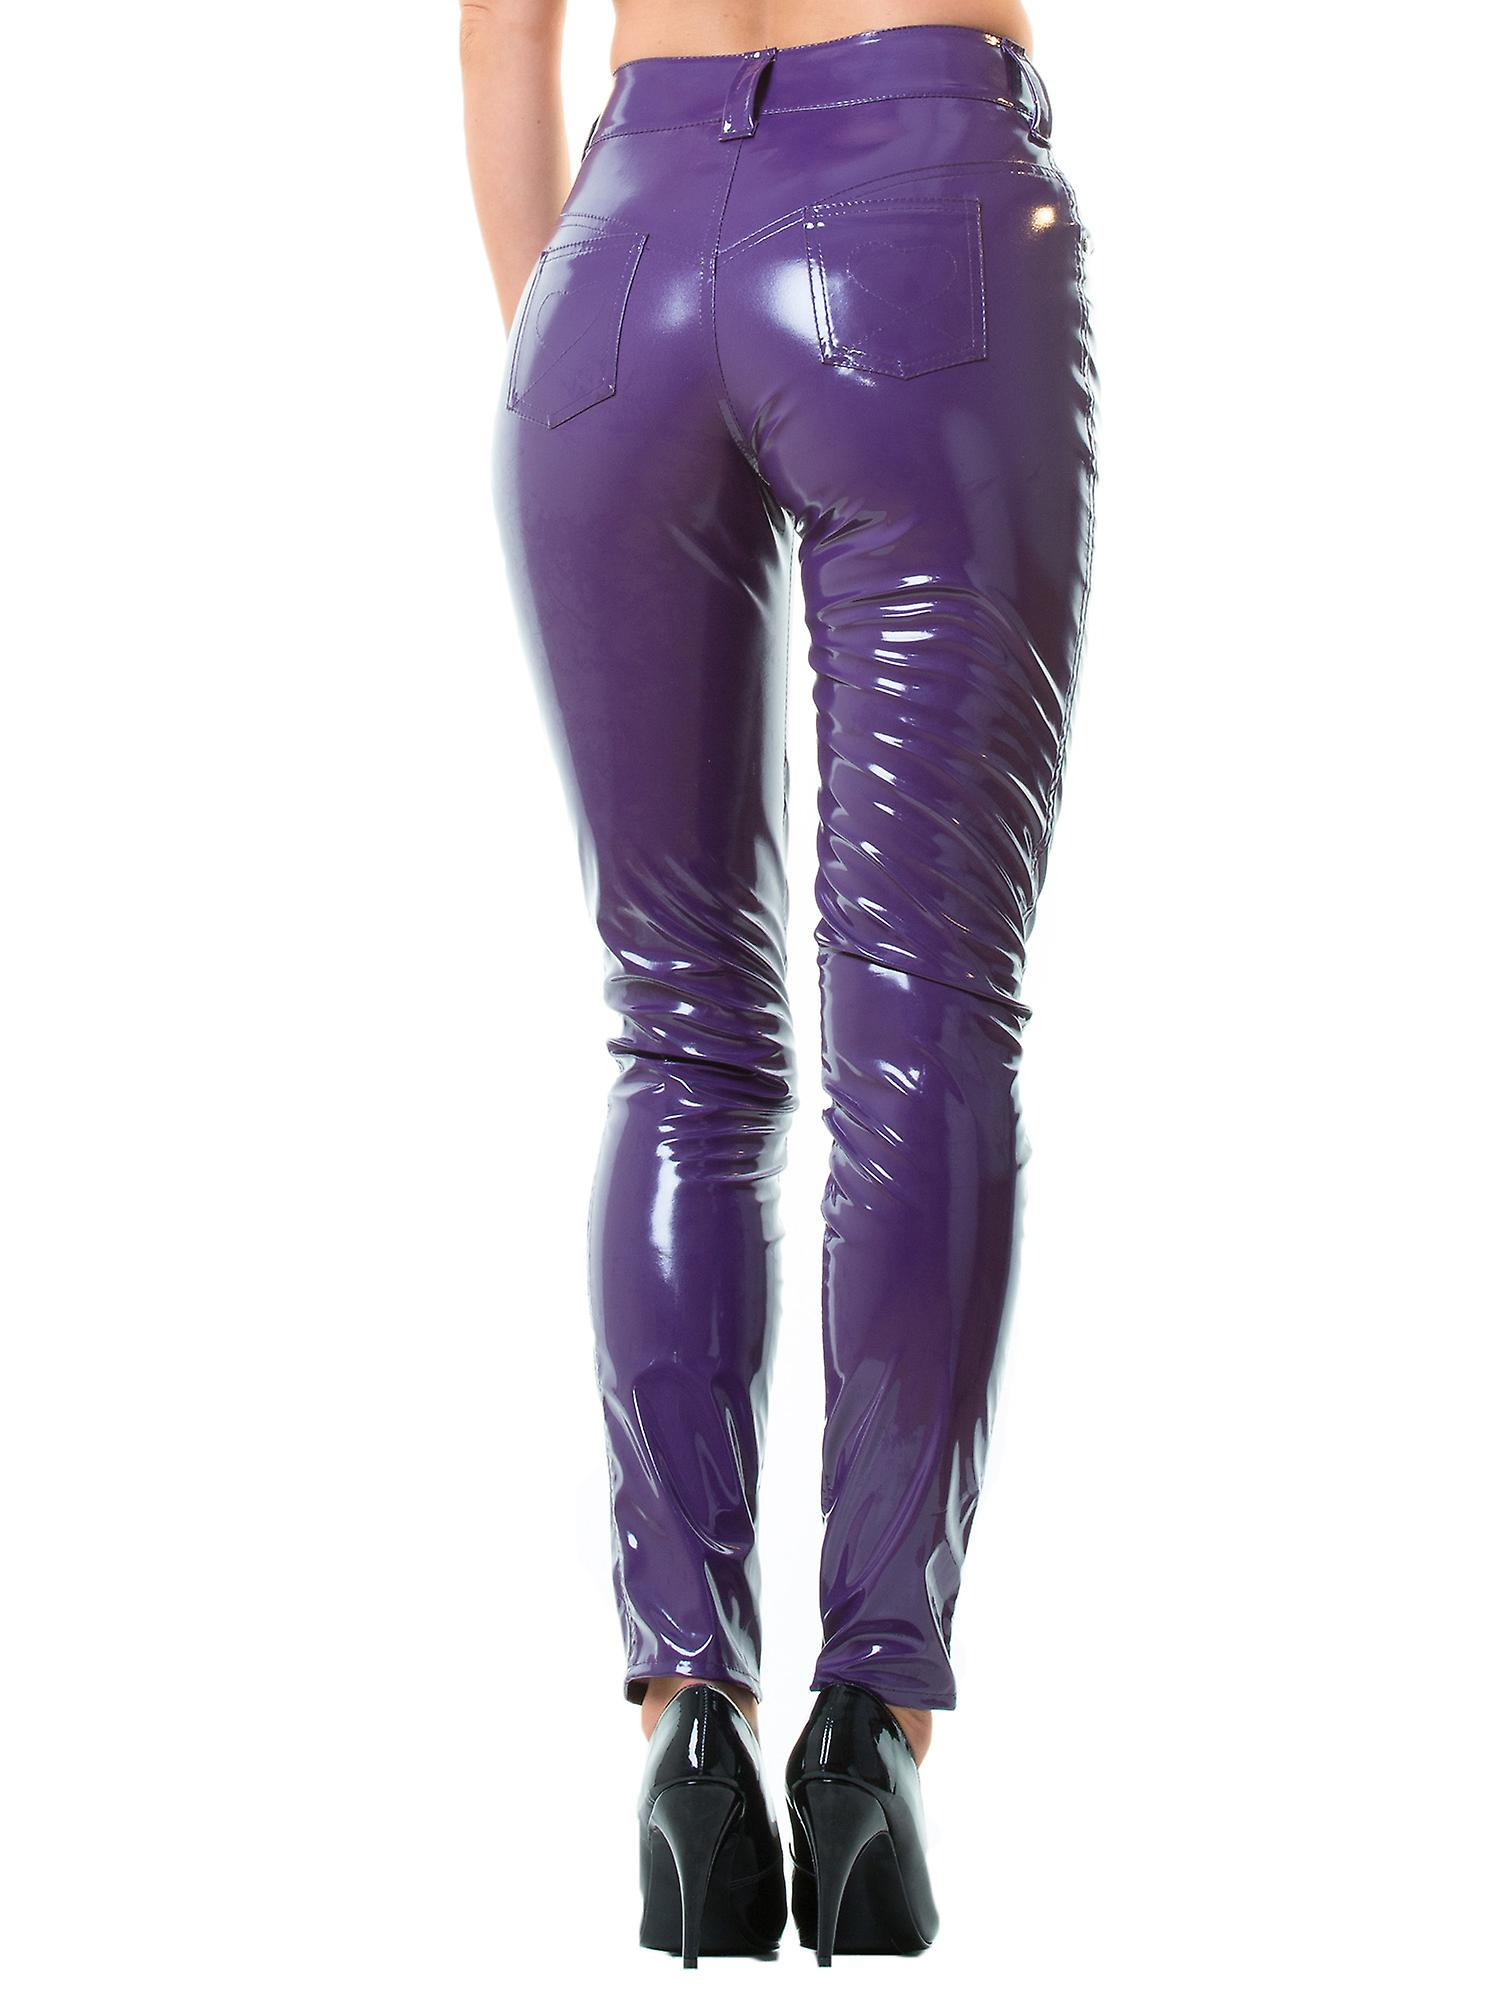 Honour Women's Sexy Trouser Jeans in PVC Purple Stitched Heart Details